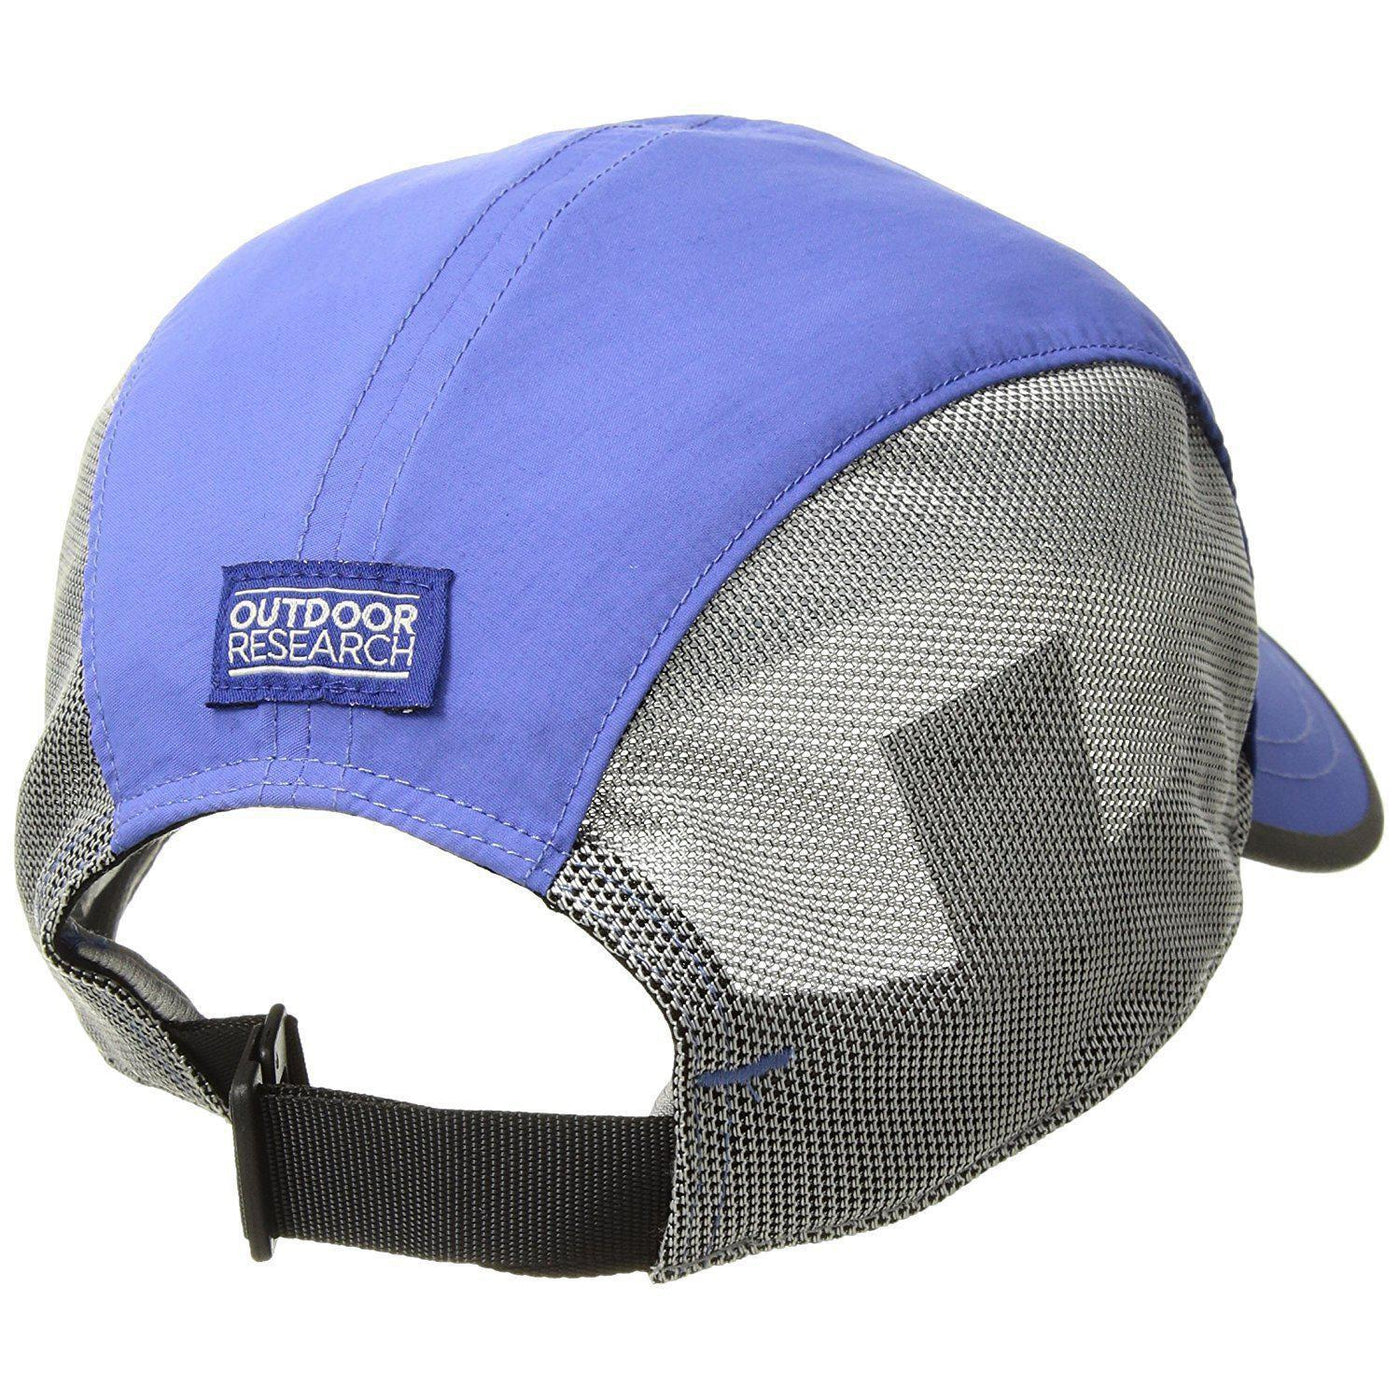 66e21a1818b Outdoor research swift sun hat one size grivet outdoors jpg 1400x1400 Outdoor  research hat size